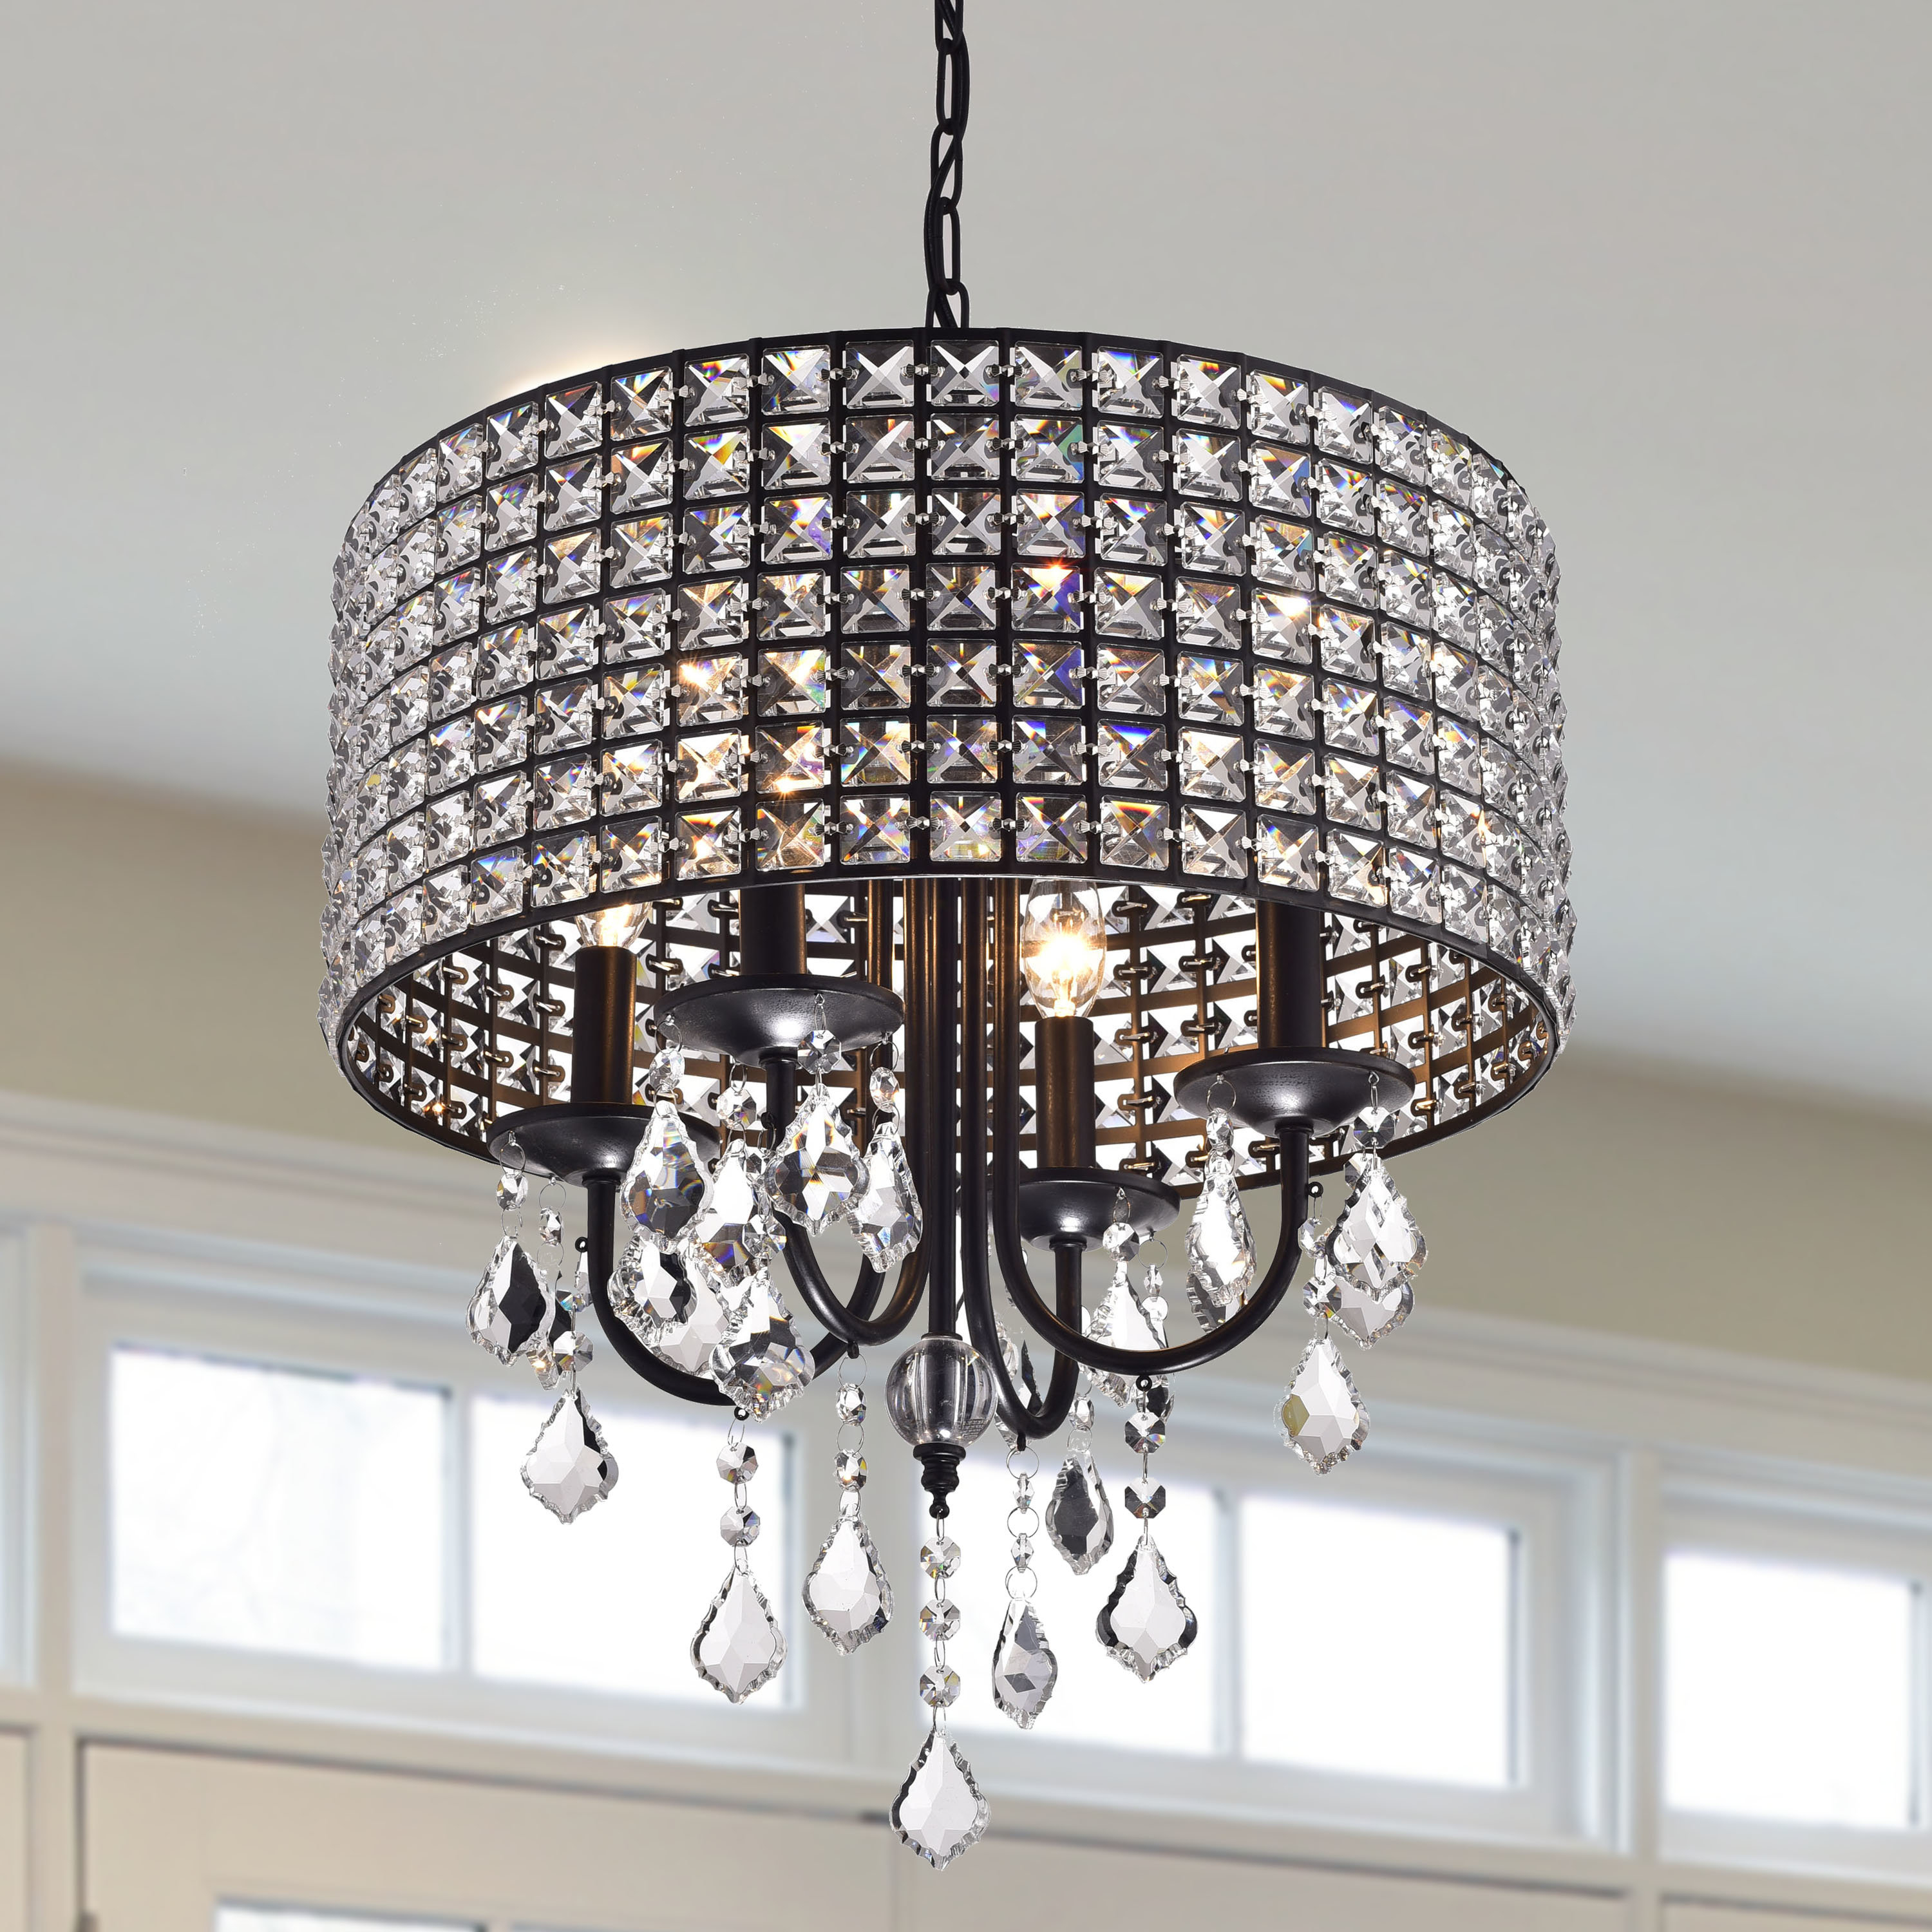 Albano 4 Light Crystal Chandelier Throughout Most Popular Aurore 4 Light Crystal Chandeliers (View 3 of 25)